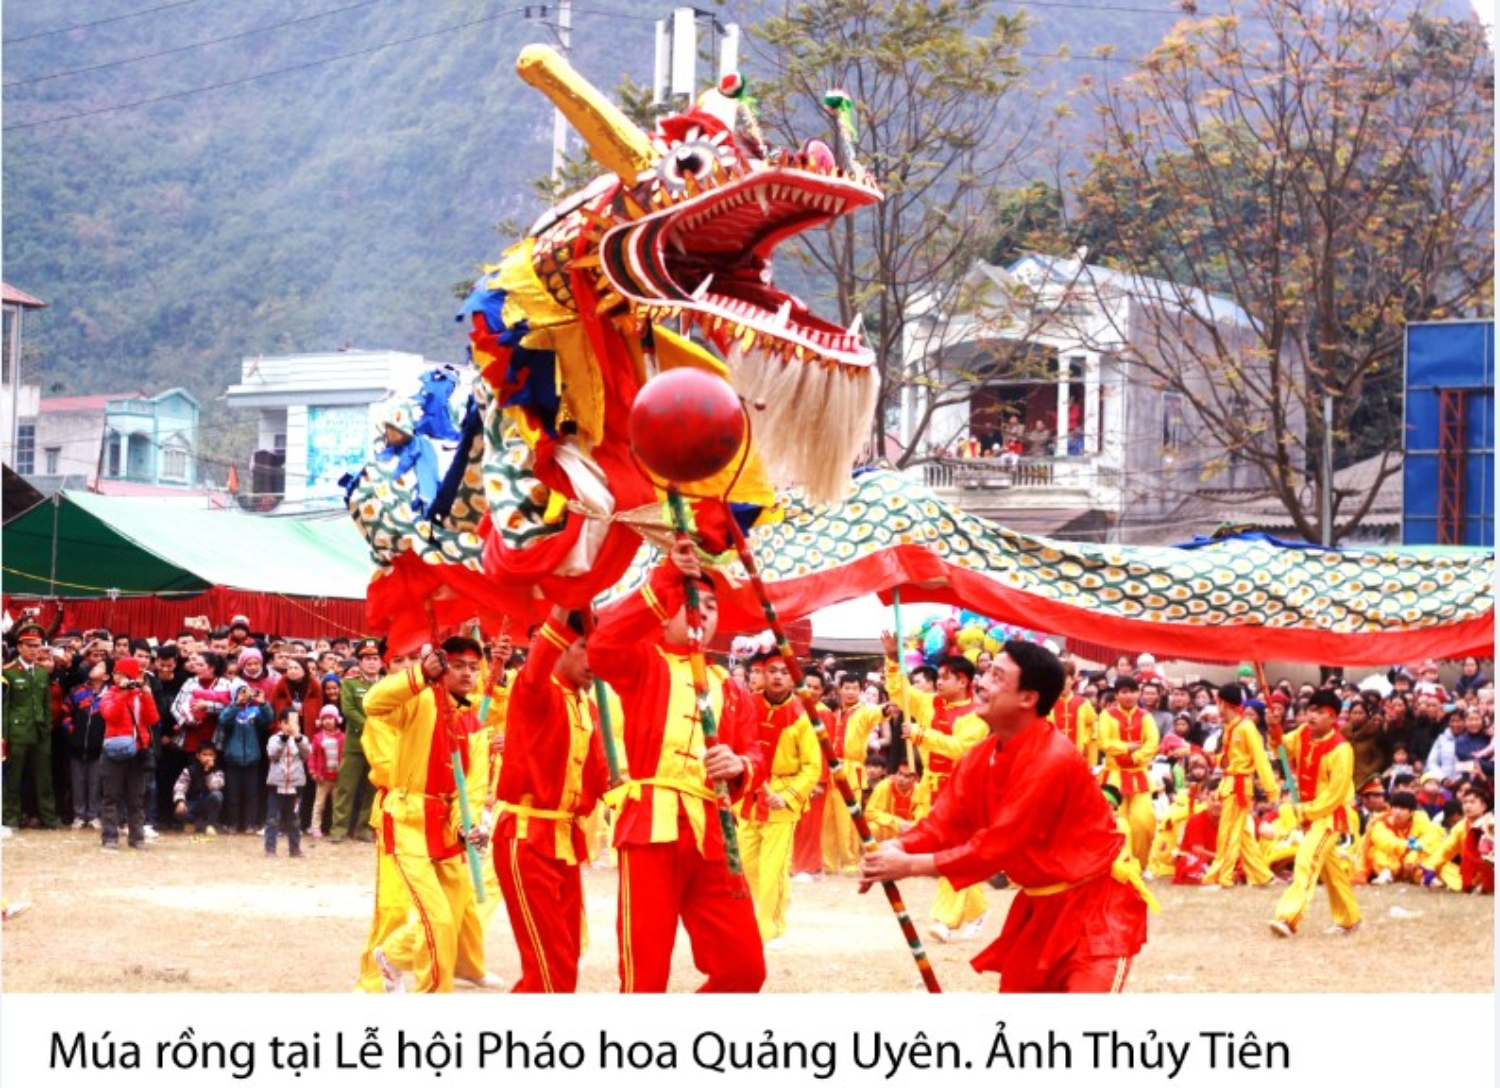 Dragon dancing in Cracker spring festival.